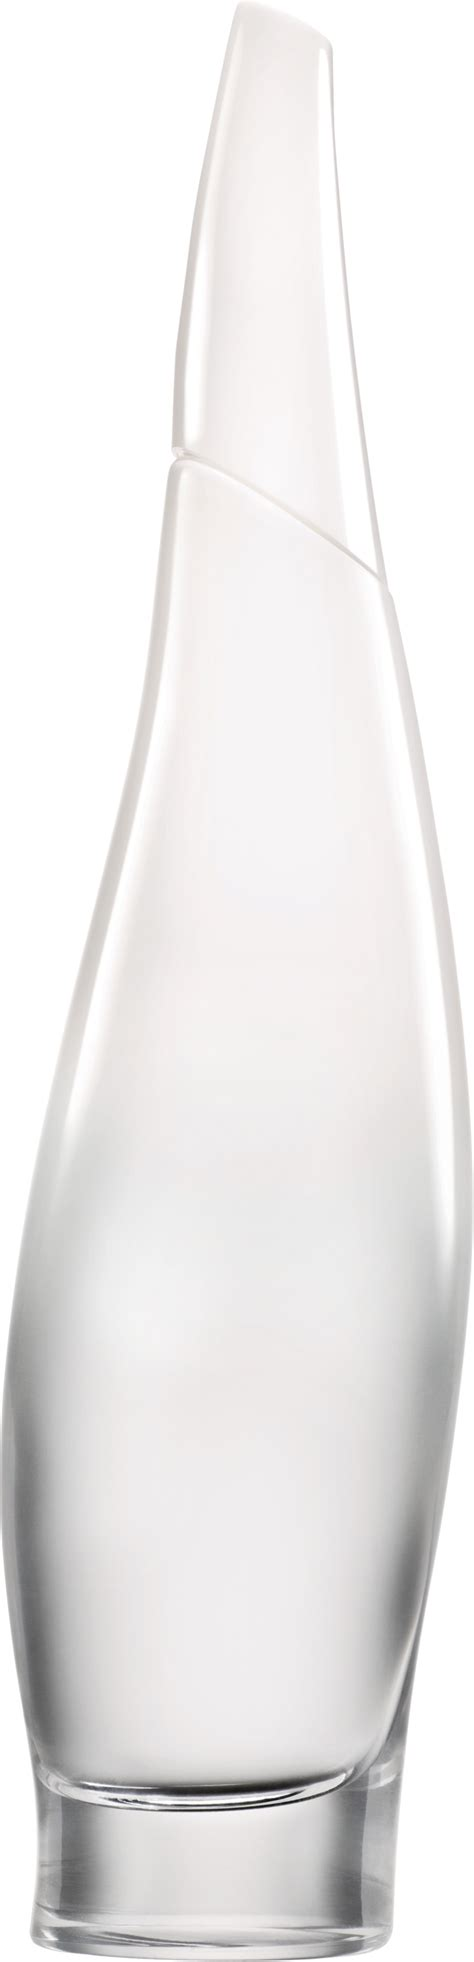 Parfum White 100ml donna karan liquid white eau de parfum spray